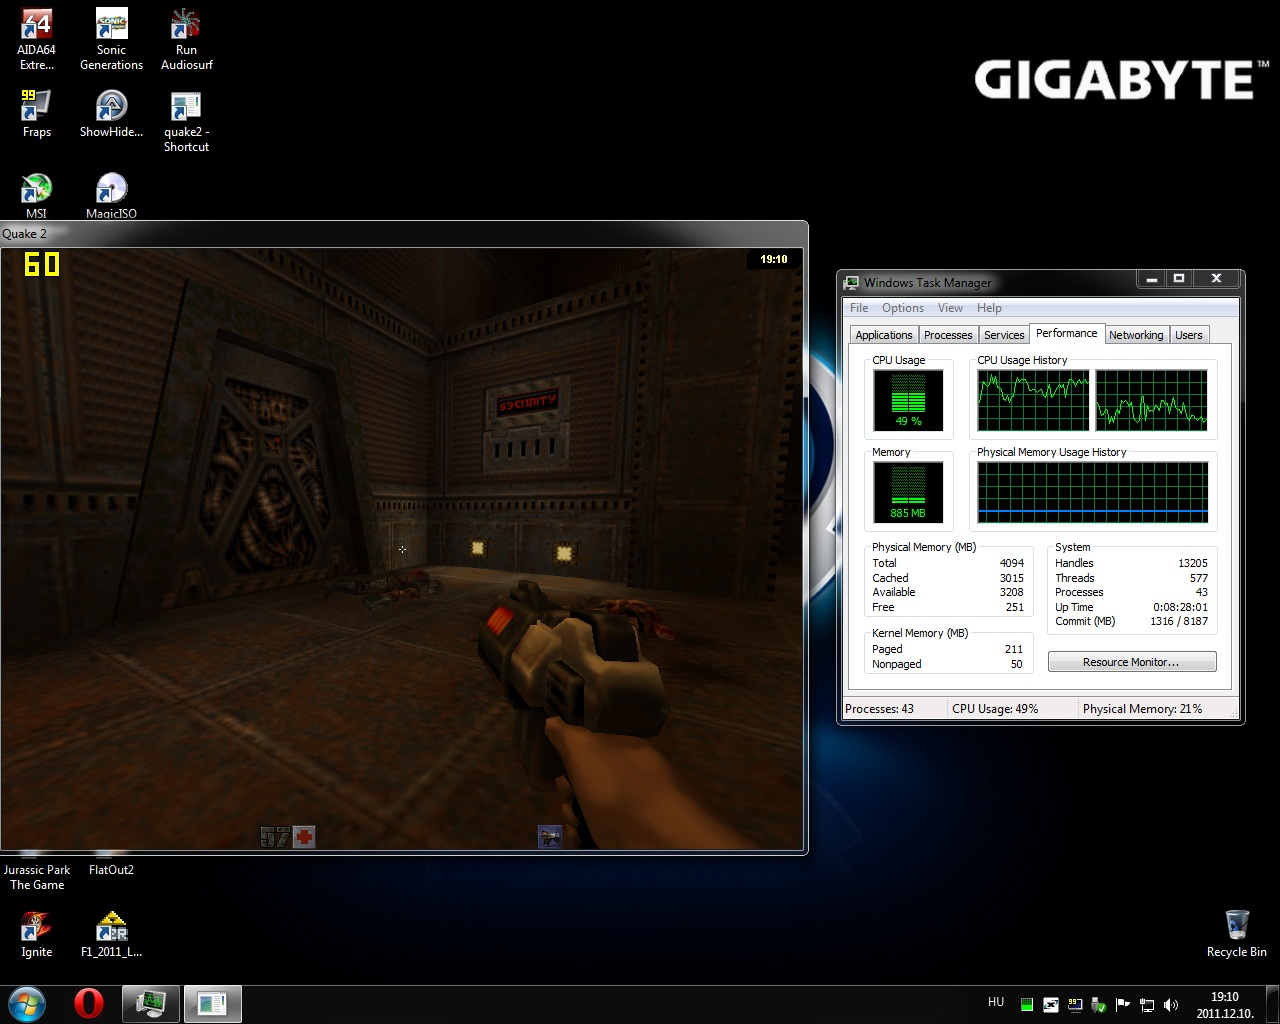 noob.hu/2011/12/10/quake2.jpg